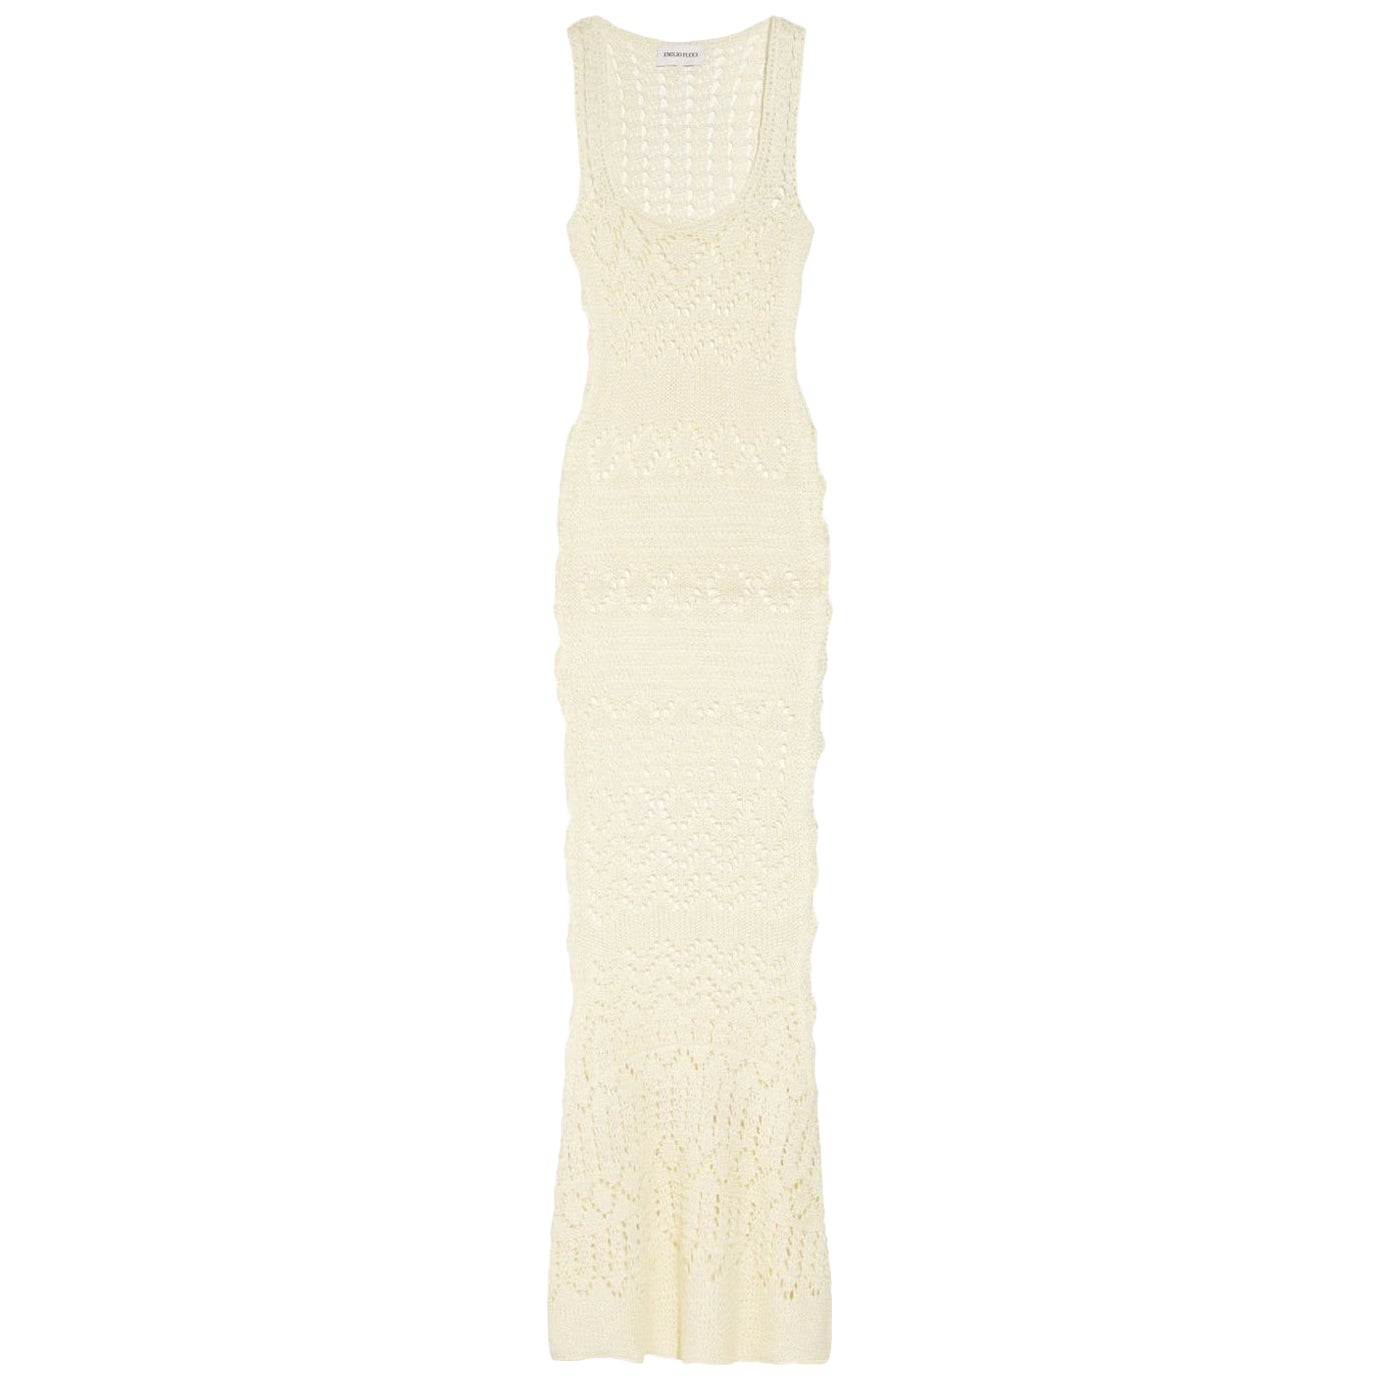 NEW Emilio Pucci by Peter Dundas Studded Ivory Crochet Knit Maxi Dress Gown